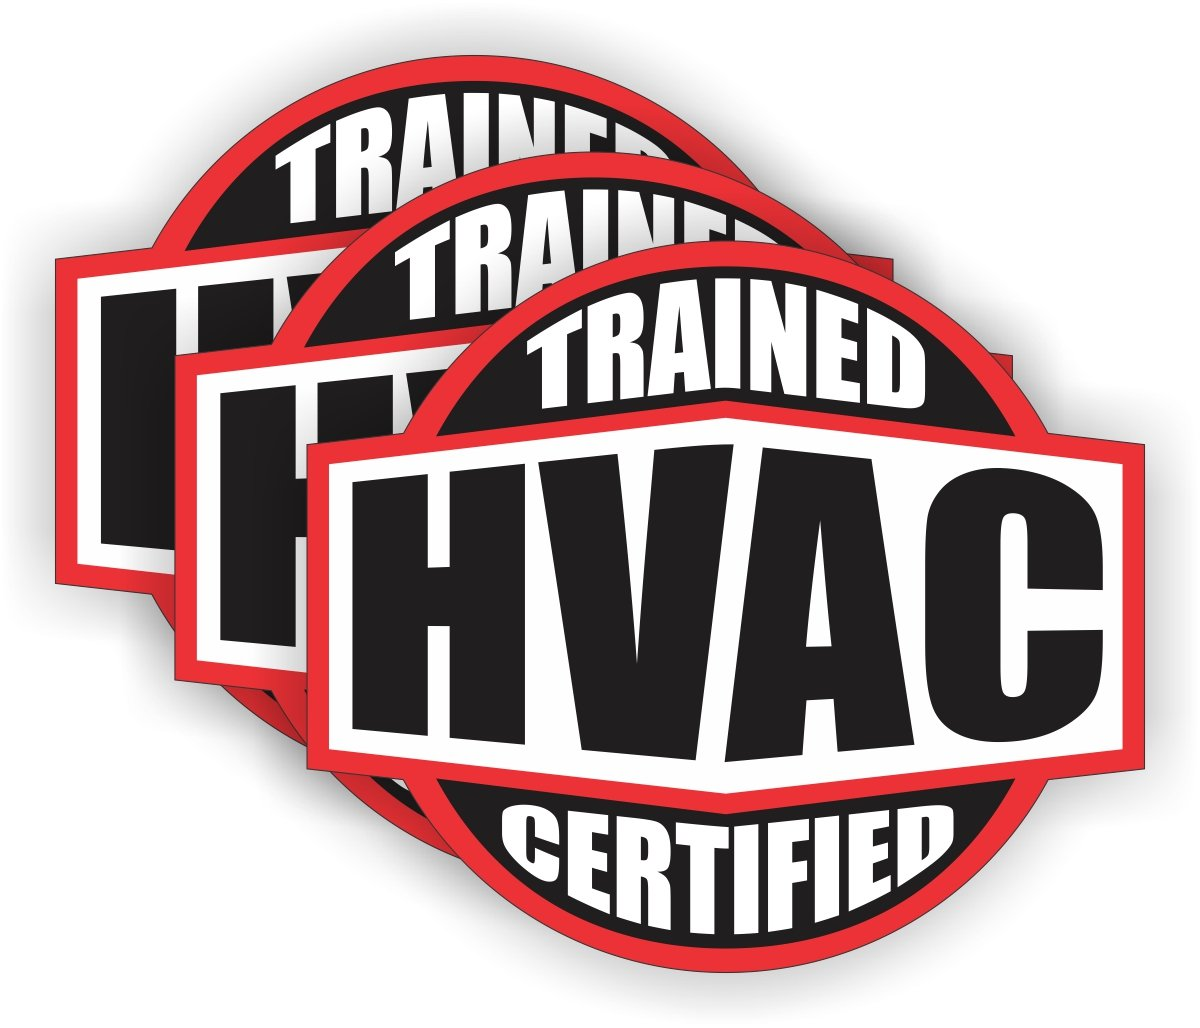 Hvac trained certified hard hat stickers helmet decals labels emblems badges toolbox heating cooling amazon com